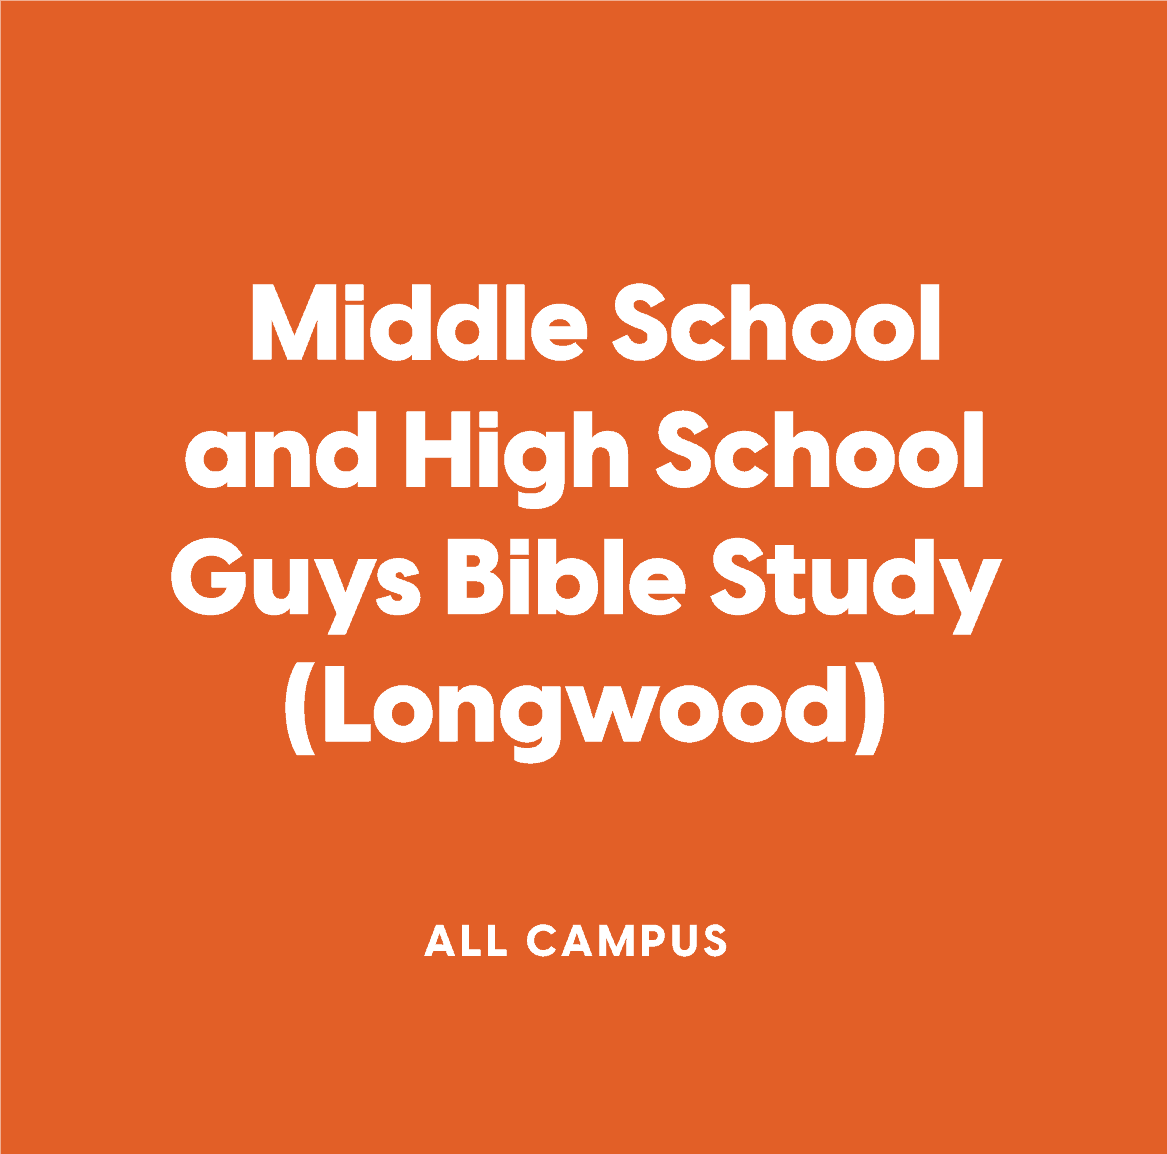 All-Campus Middle School and High School Guys Bible Study (Longwood)